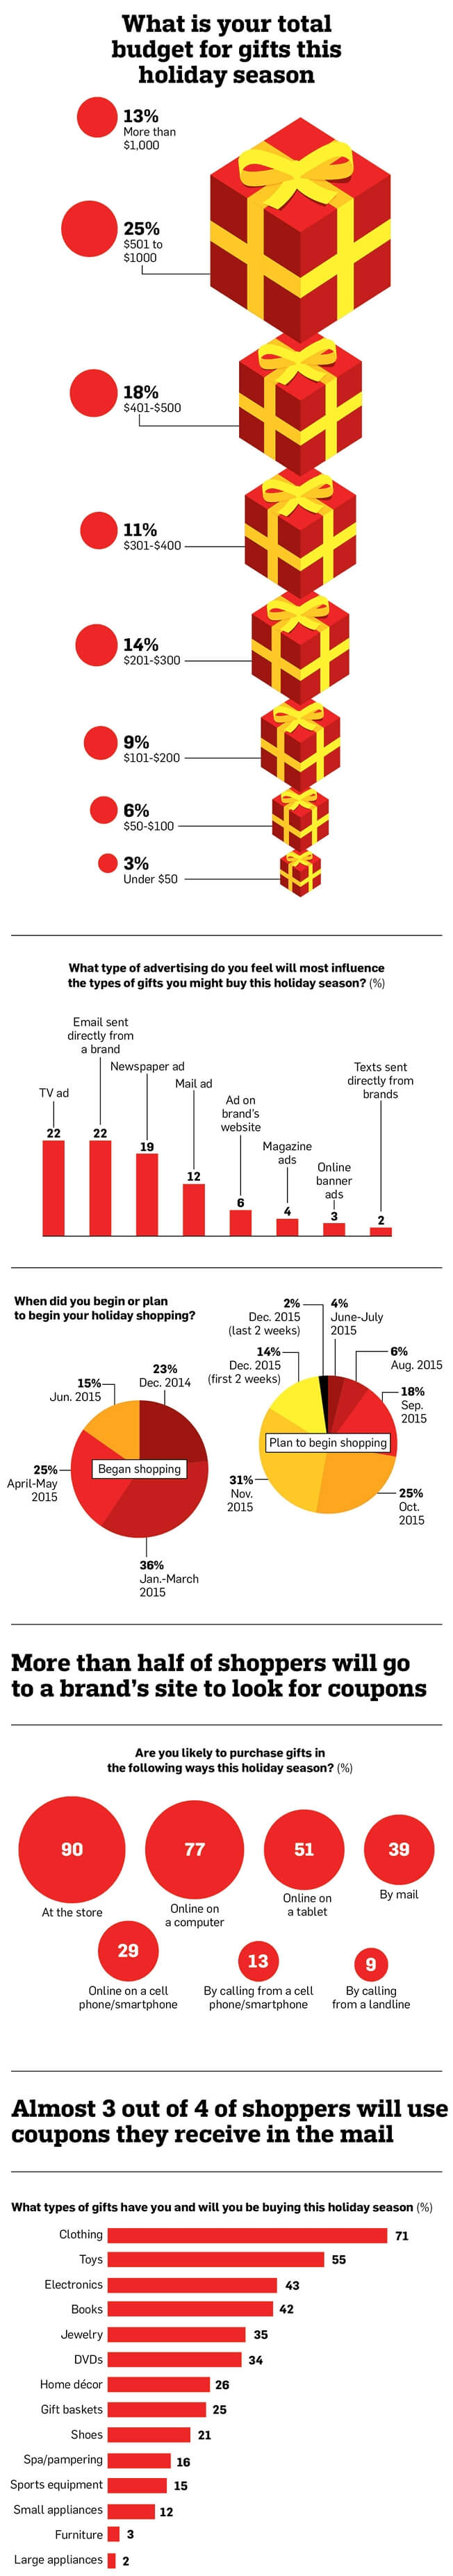 Infographic: What shoppers want and where they want to buy